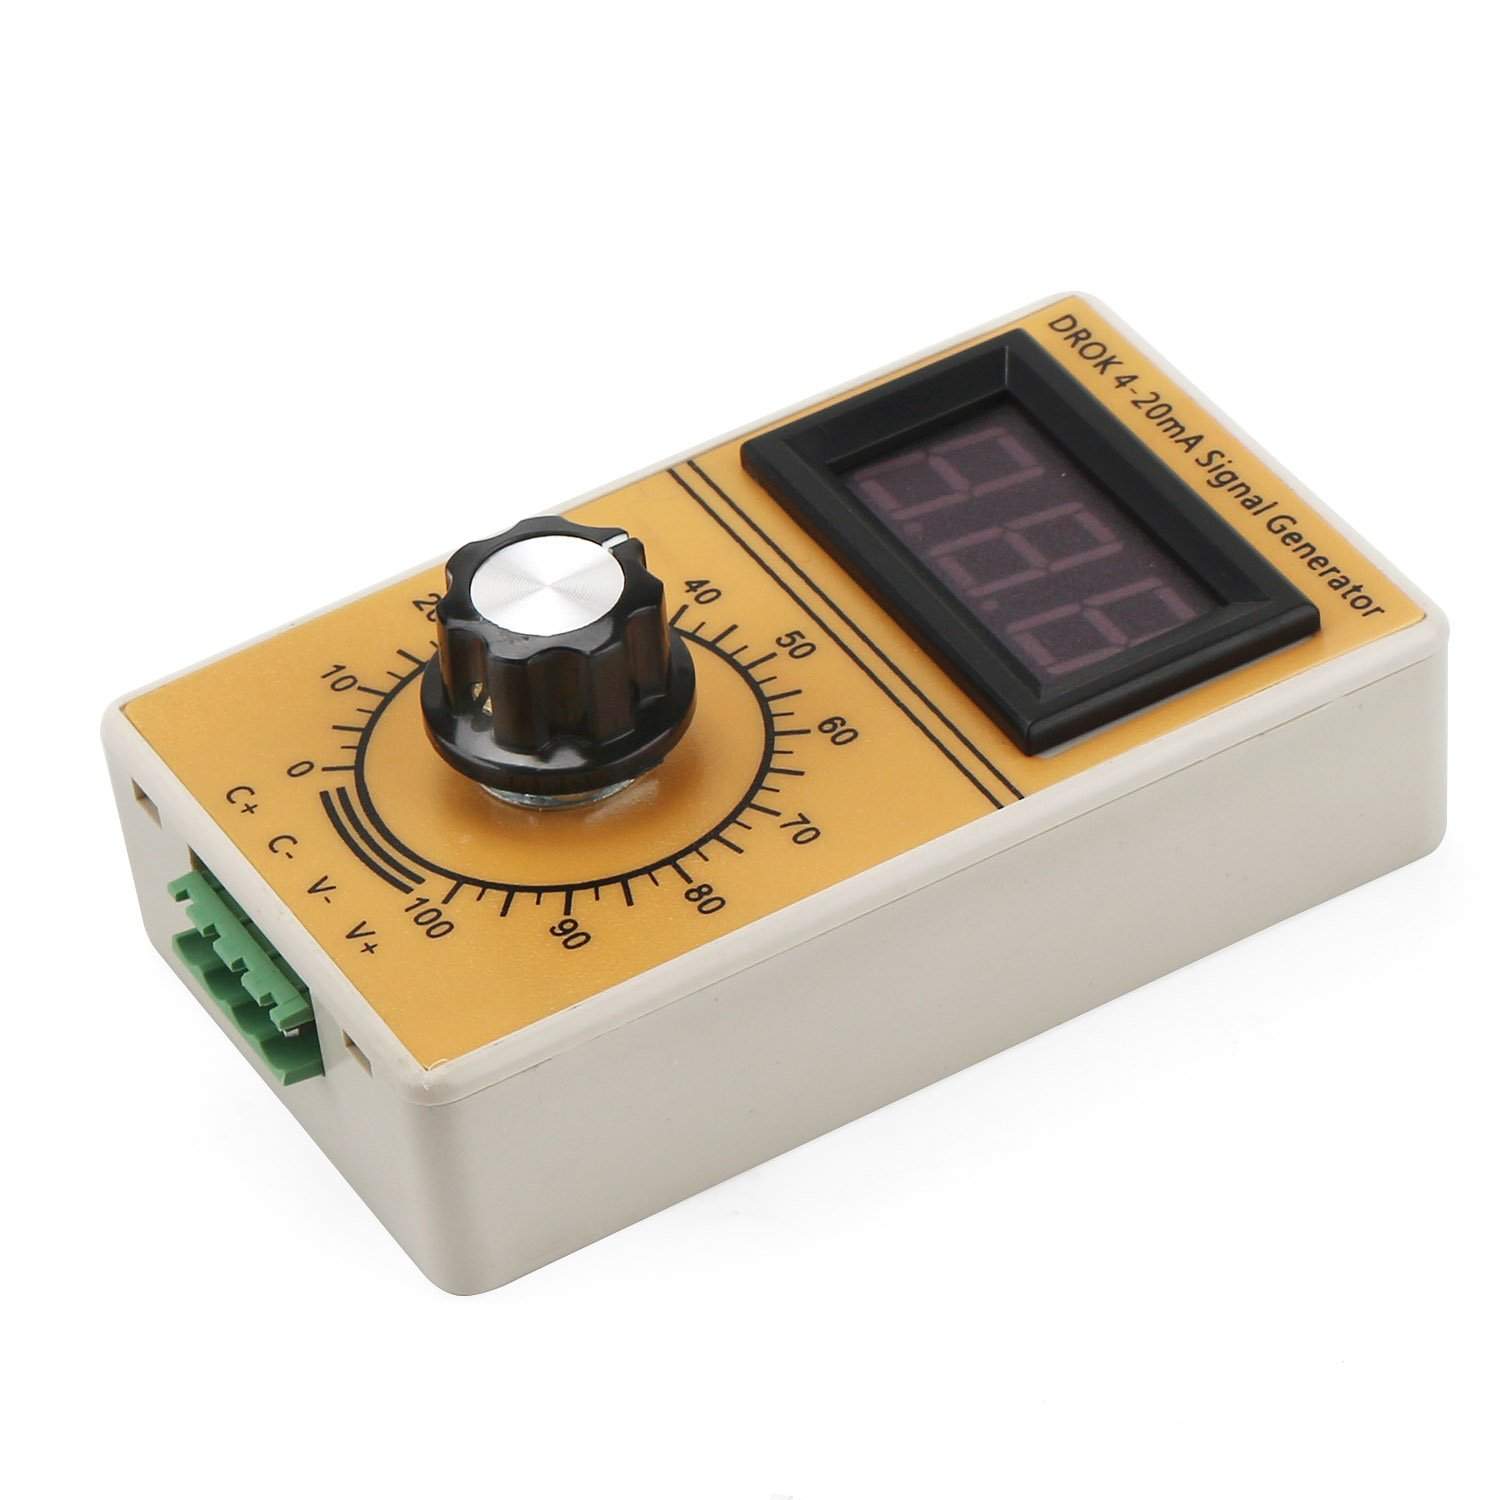 Drok 4 20ma Signal Generator Constant Current Source Ampere Meter Function Circuit Car Tuning Handheld Device Digital Display Analog Generating Suitable For Valve